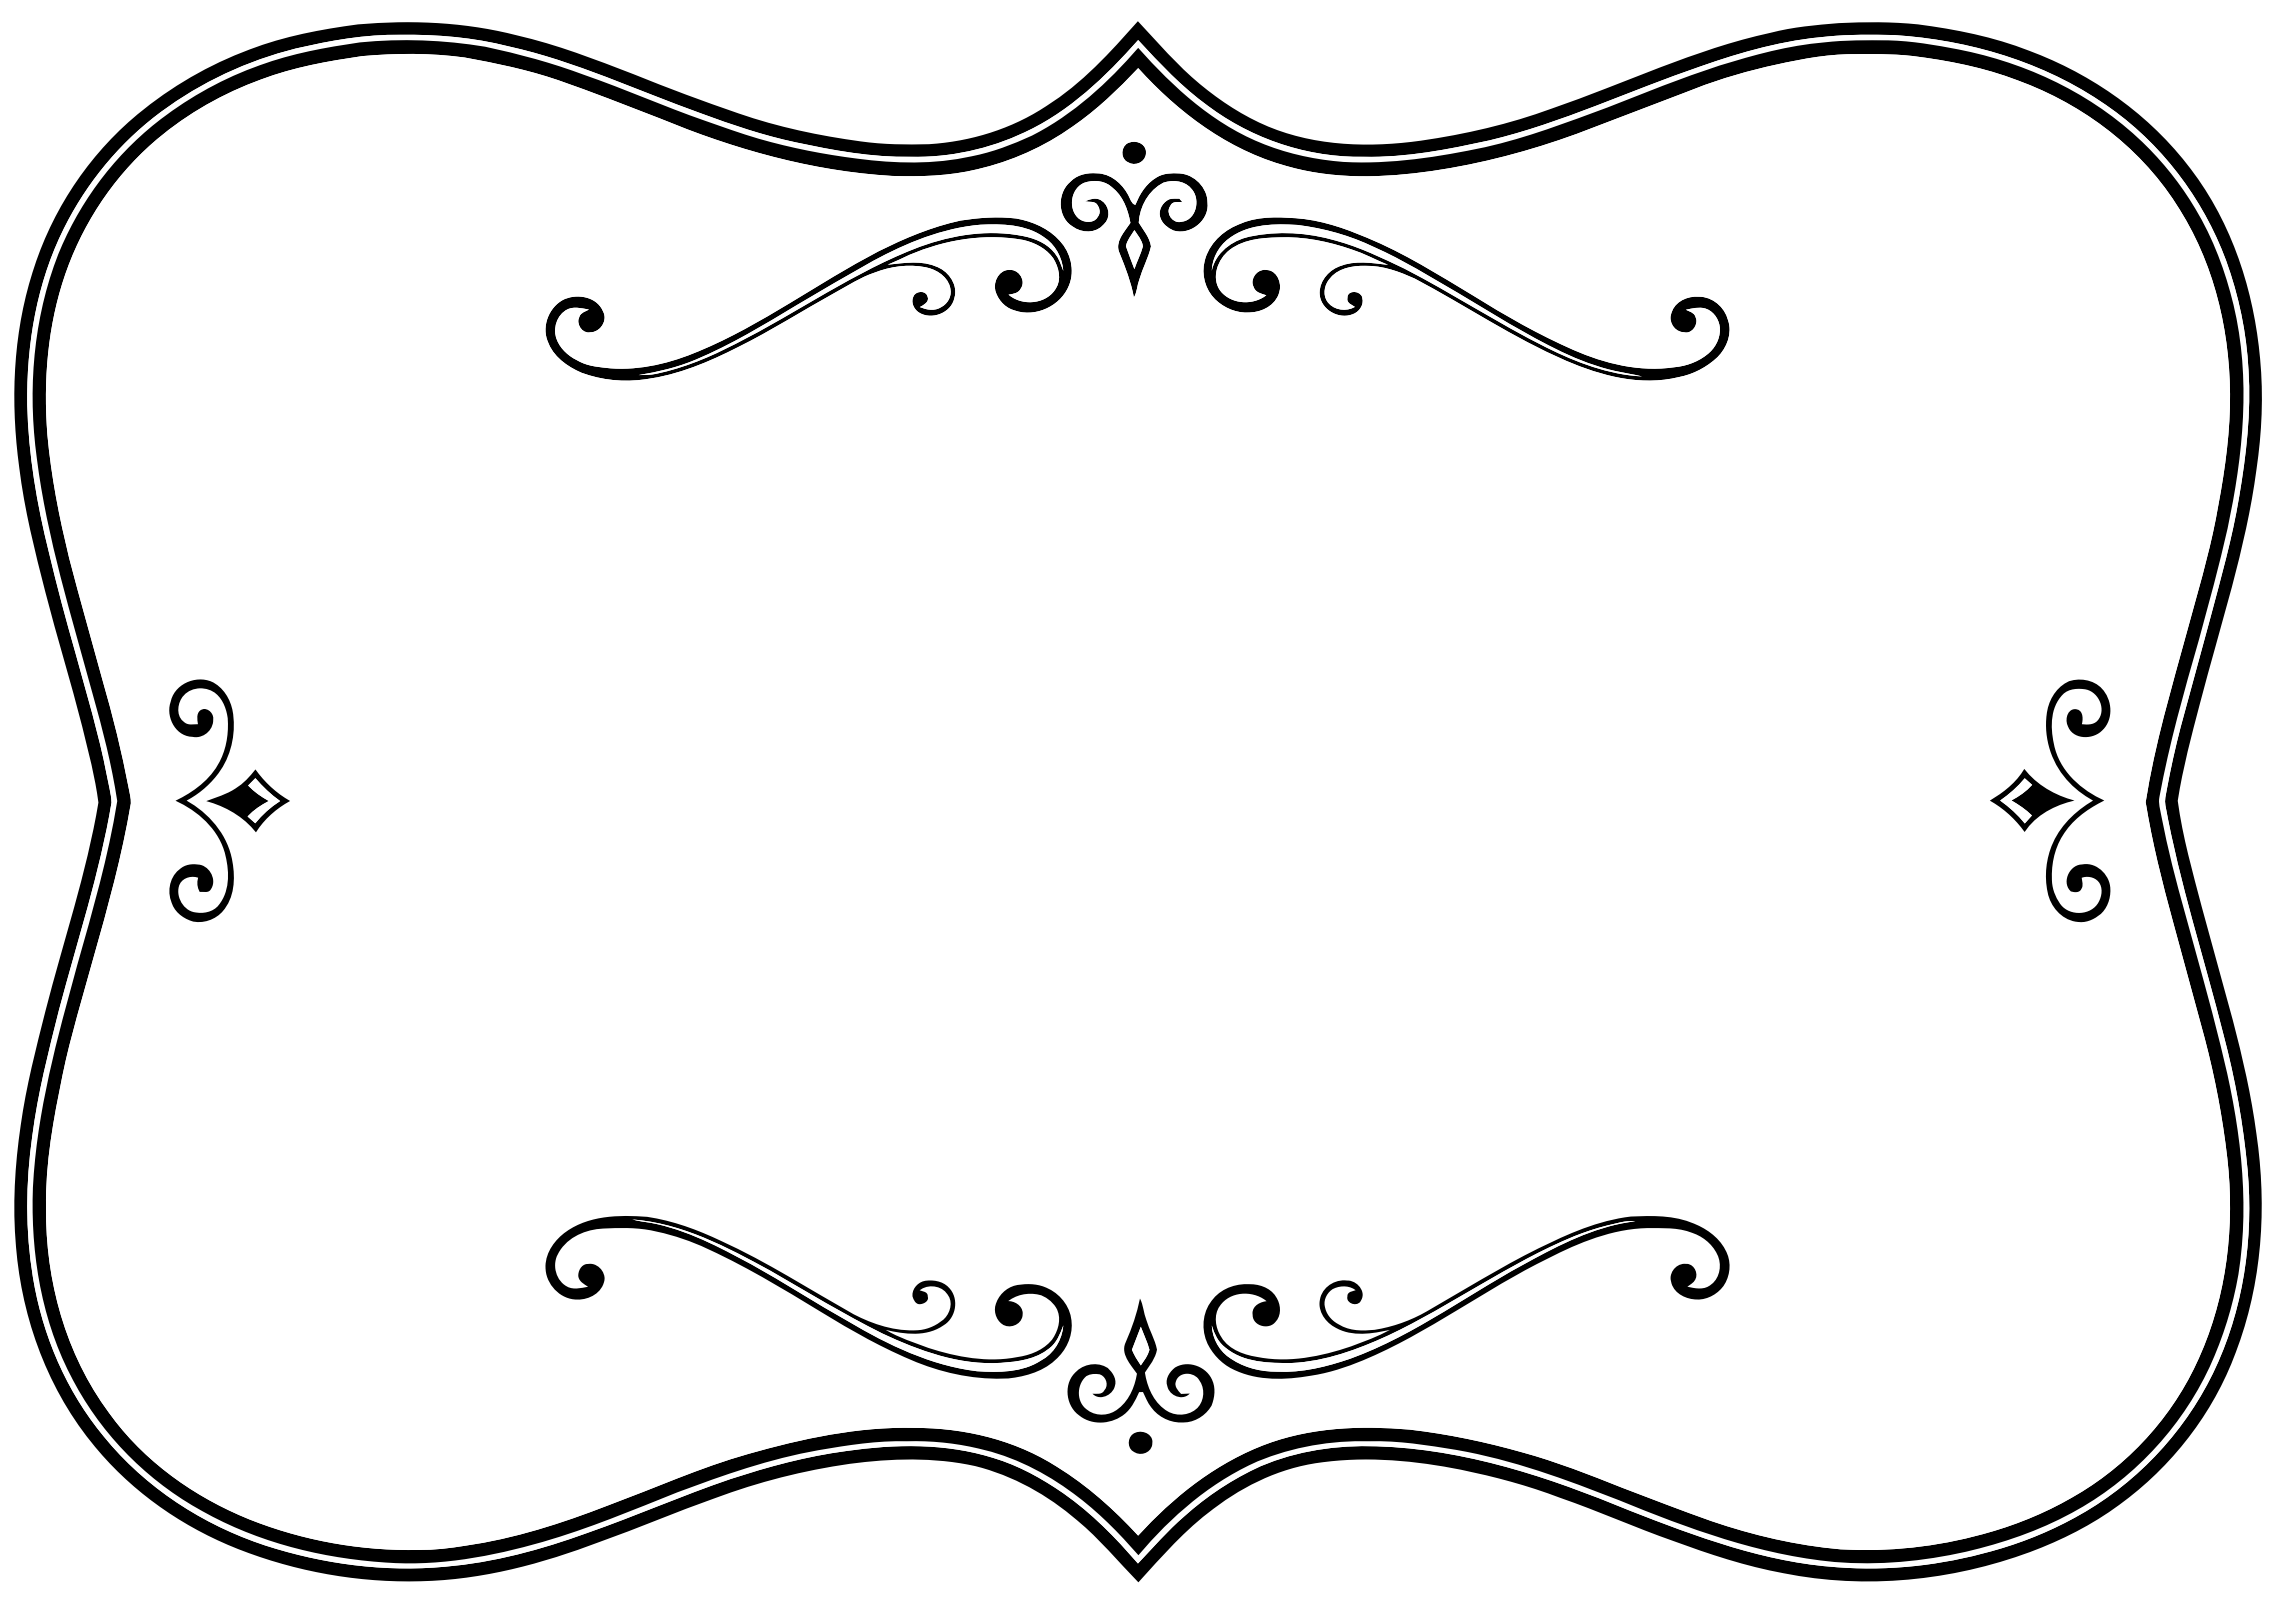 Flourishes clipart frame. Decorative black and white